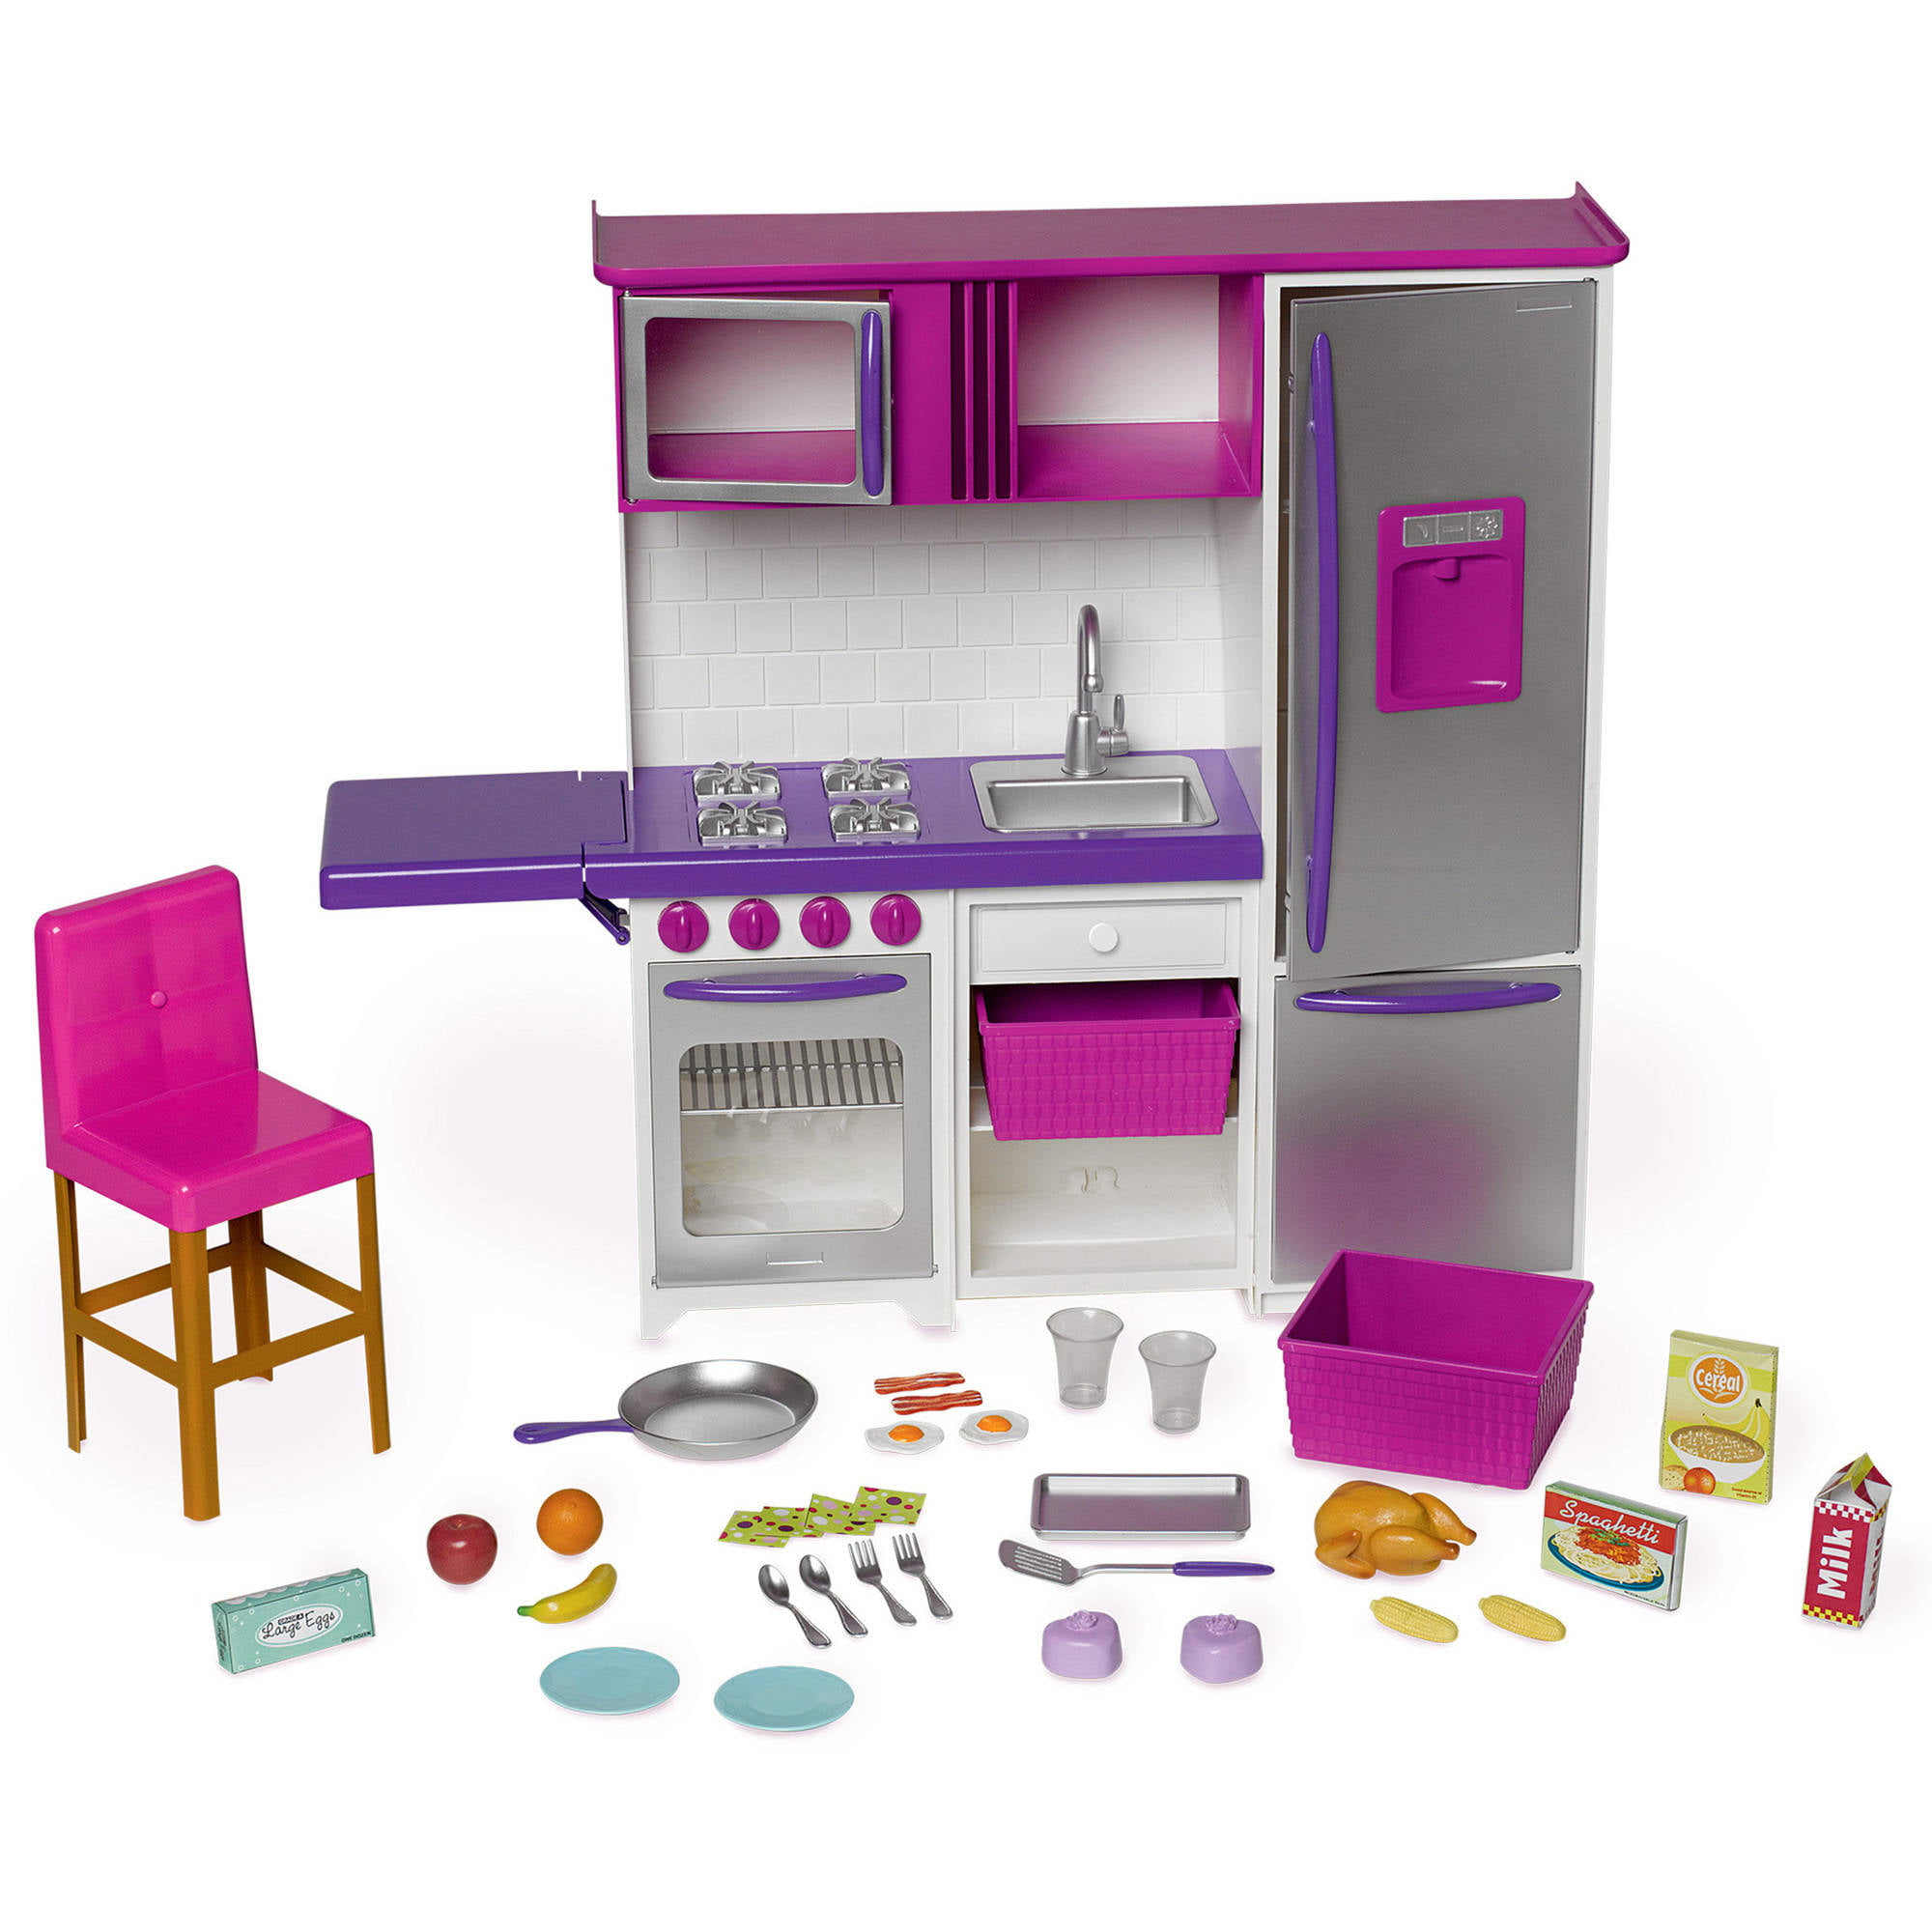 Kitchen Accessories Walmart: My Life As Doll Kitchenette With Large Refrigerator